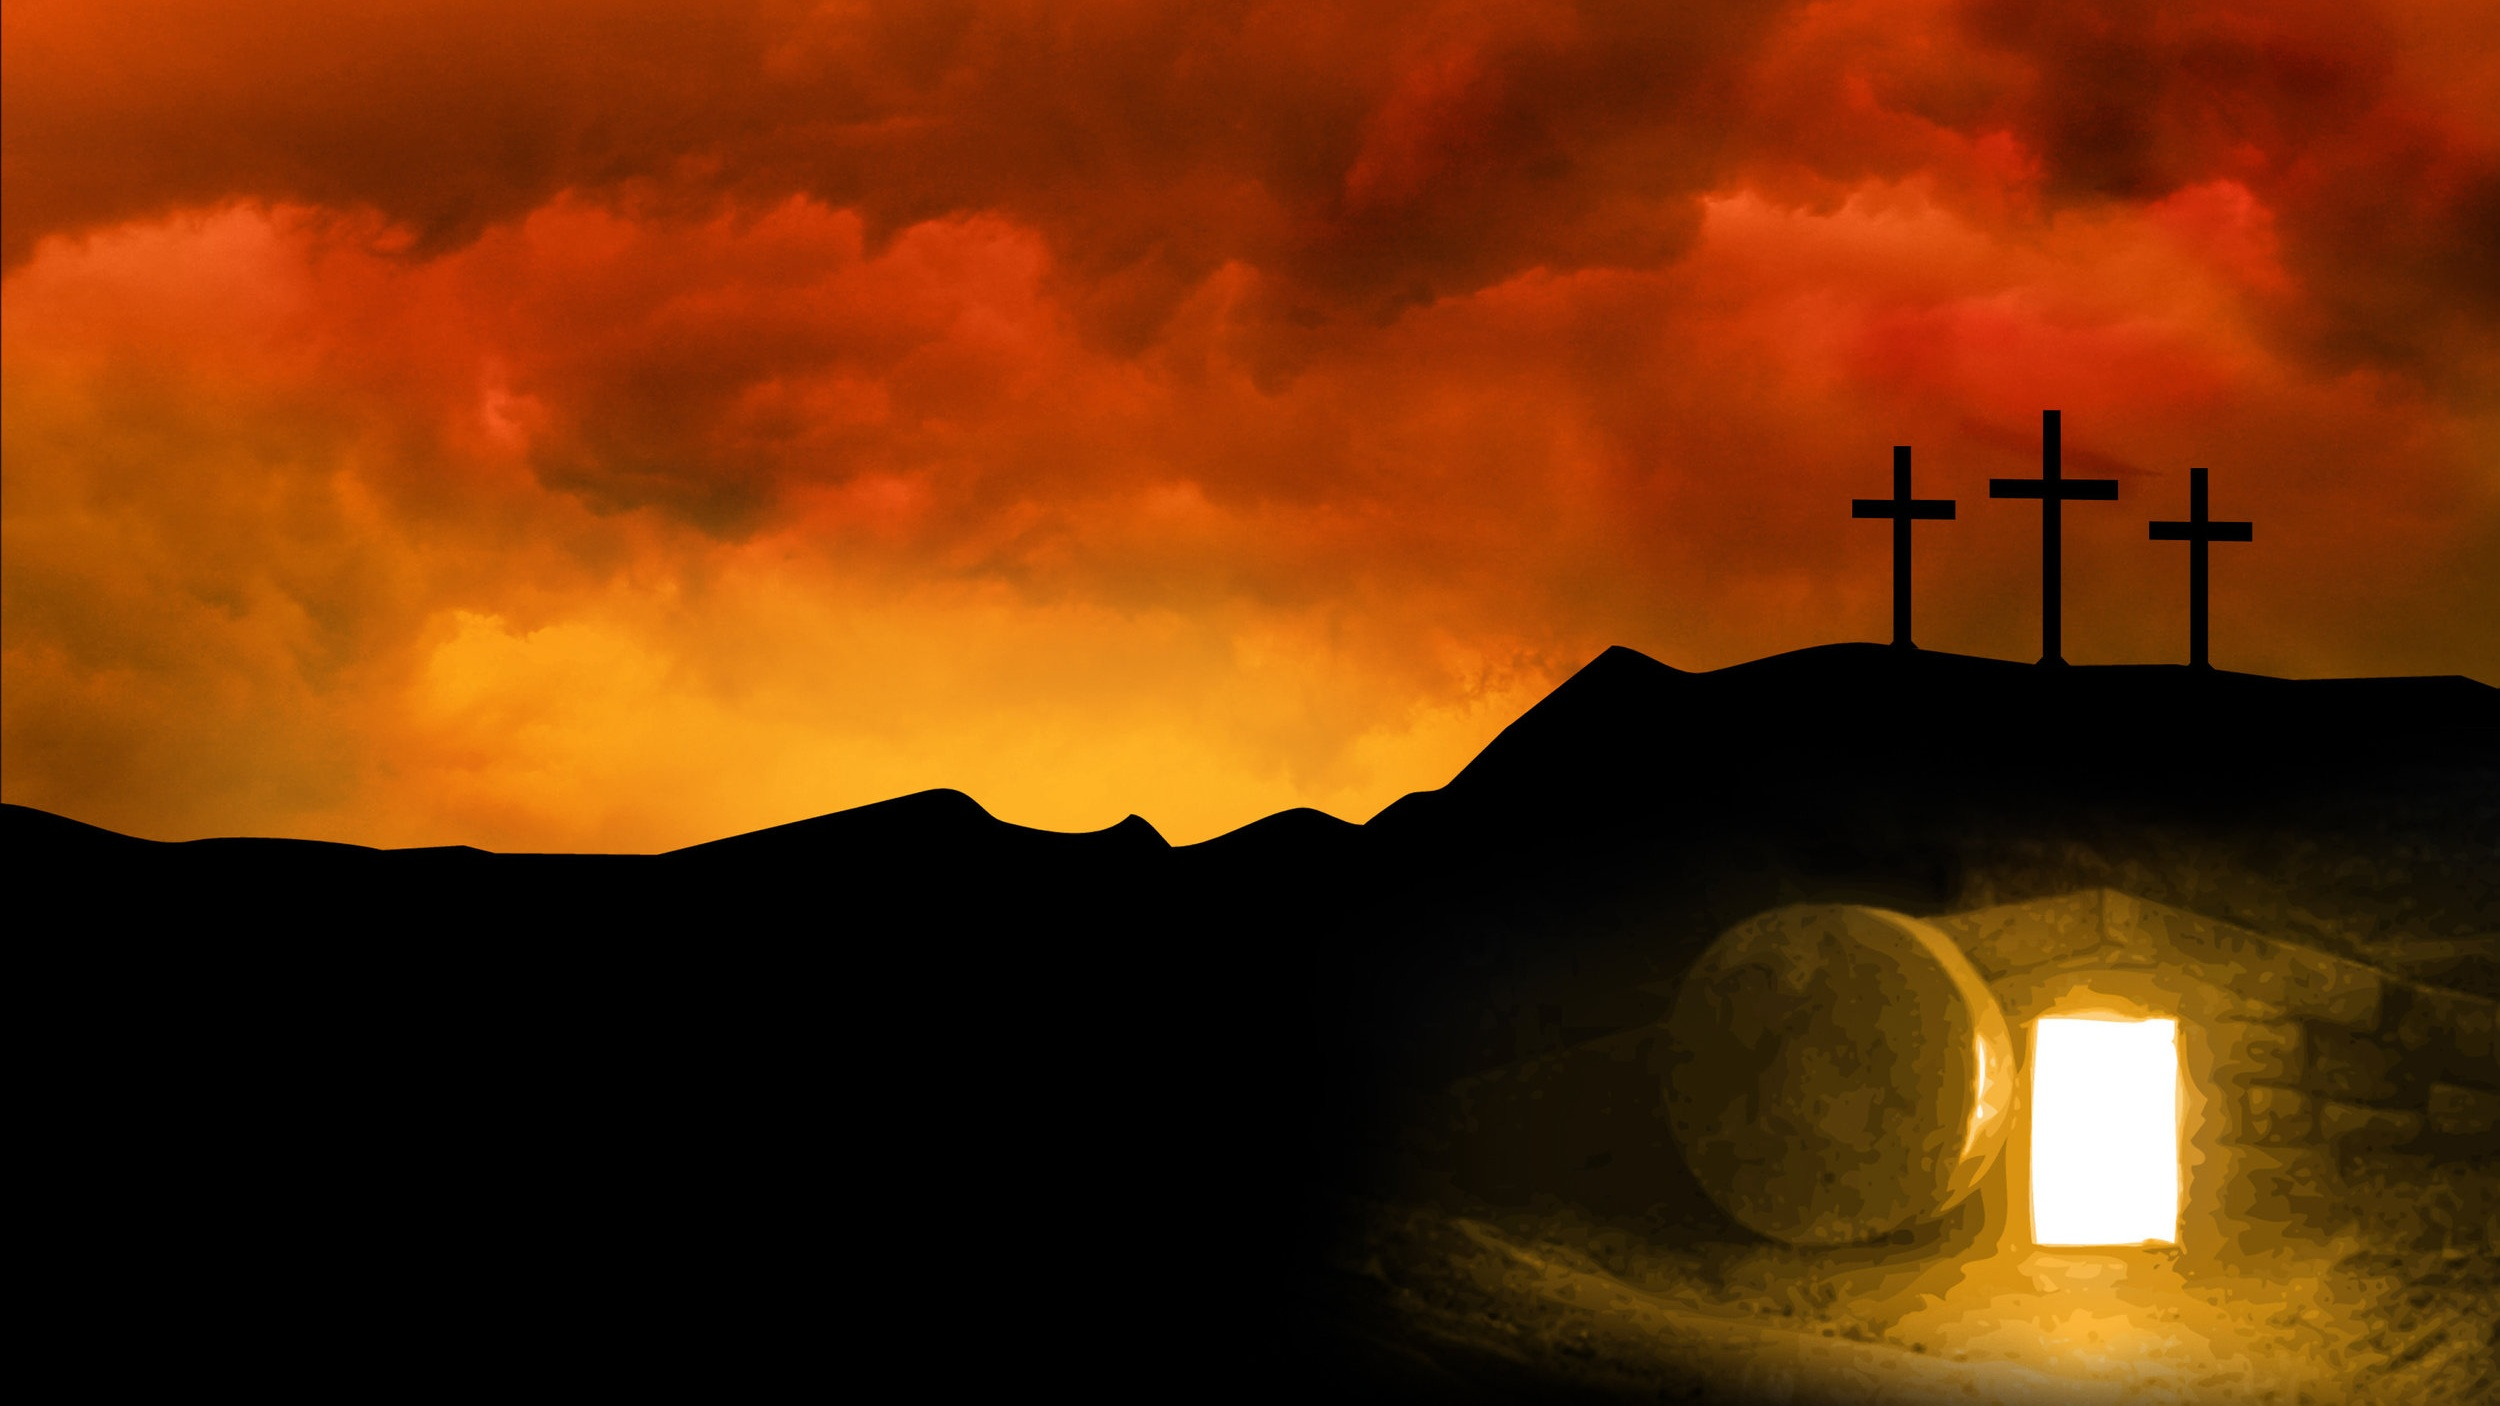 Easter+Resurrection+Background+%2816%29.jpg